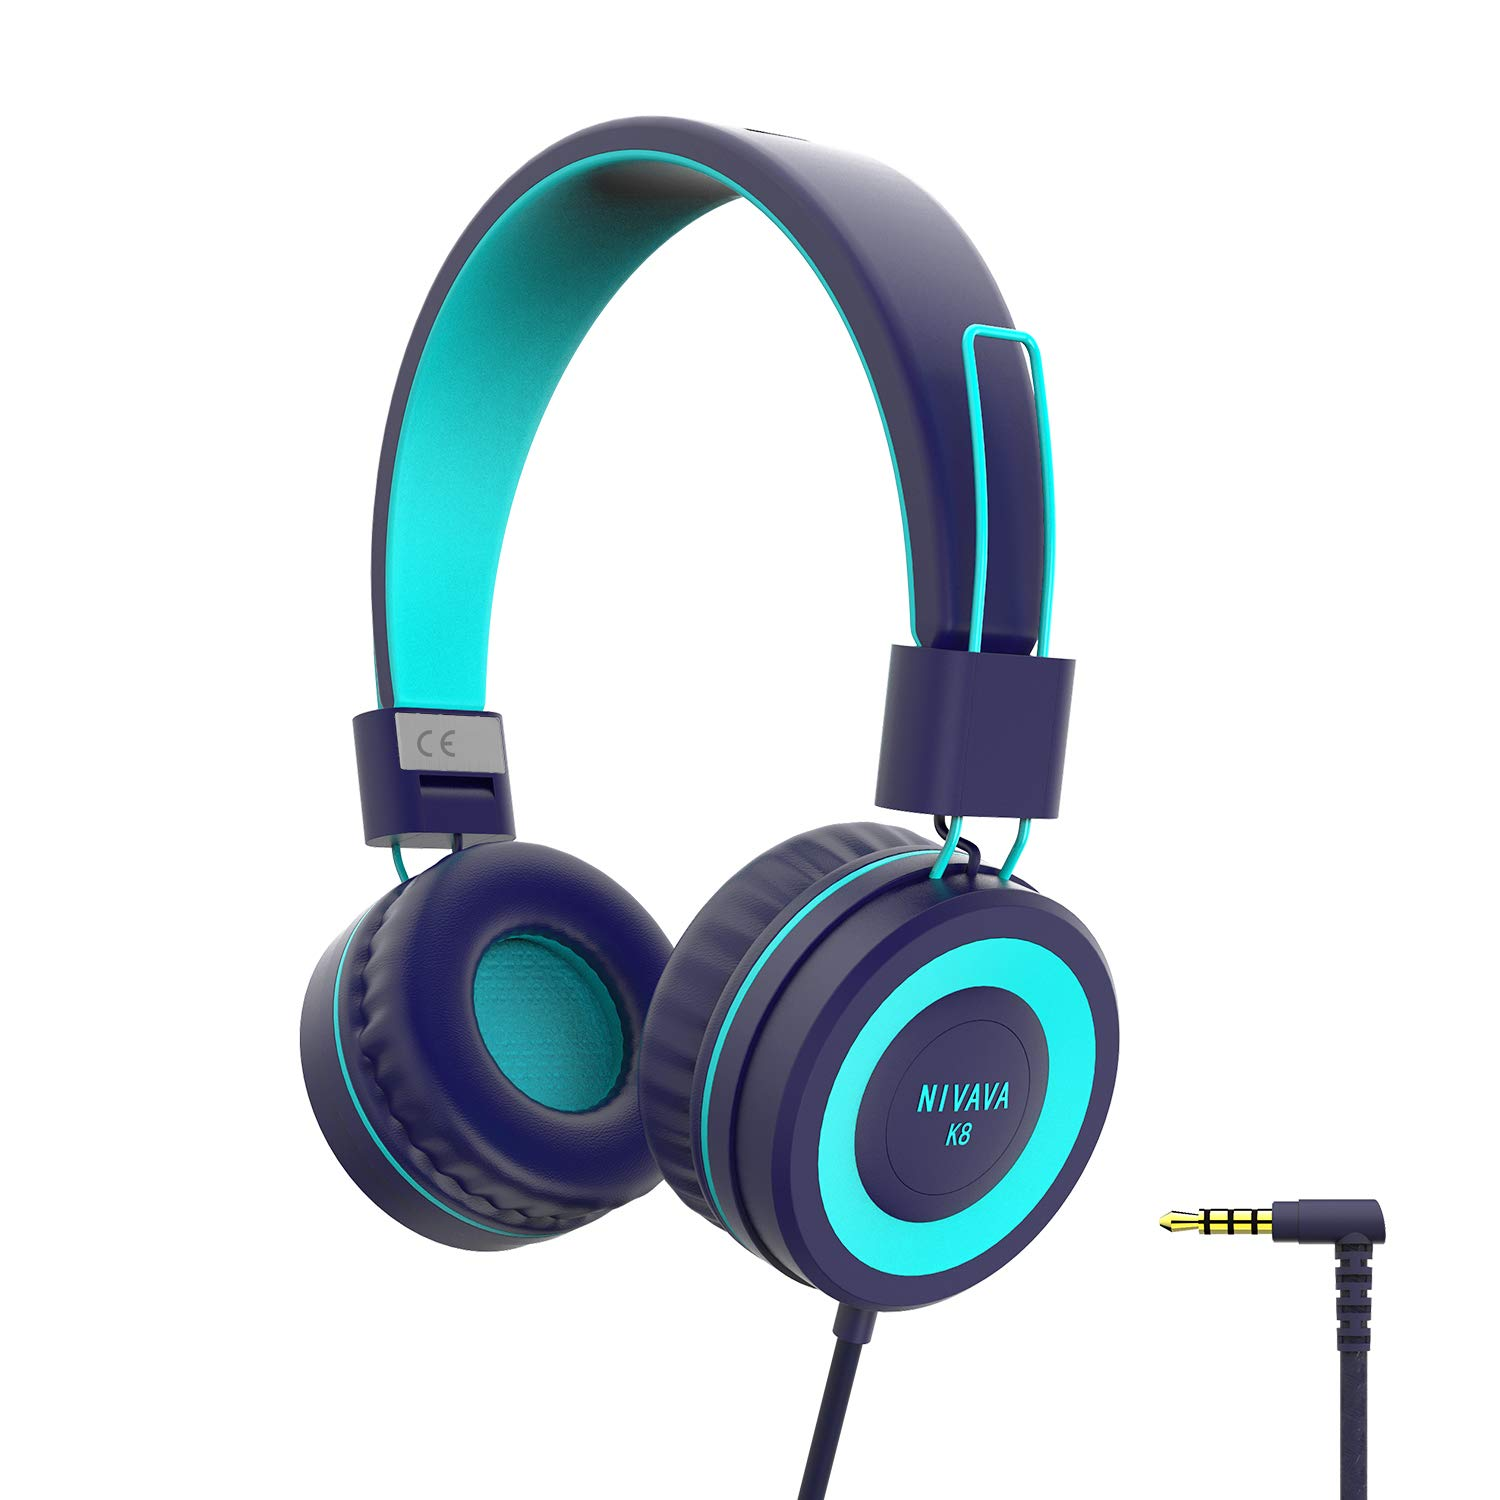 NIVAVA K8 Kids Headphones for Children Boys Girls Teens Wired Foldable Lightweight Stereo On Ear Headset for iPad Cellphones Computer MP3/4 Kindle Airplane School(Navy/Teal)